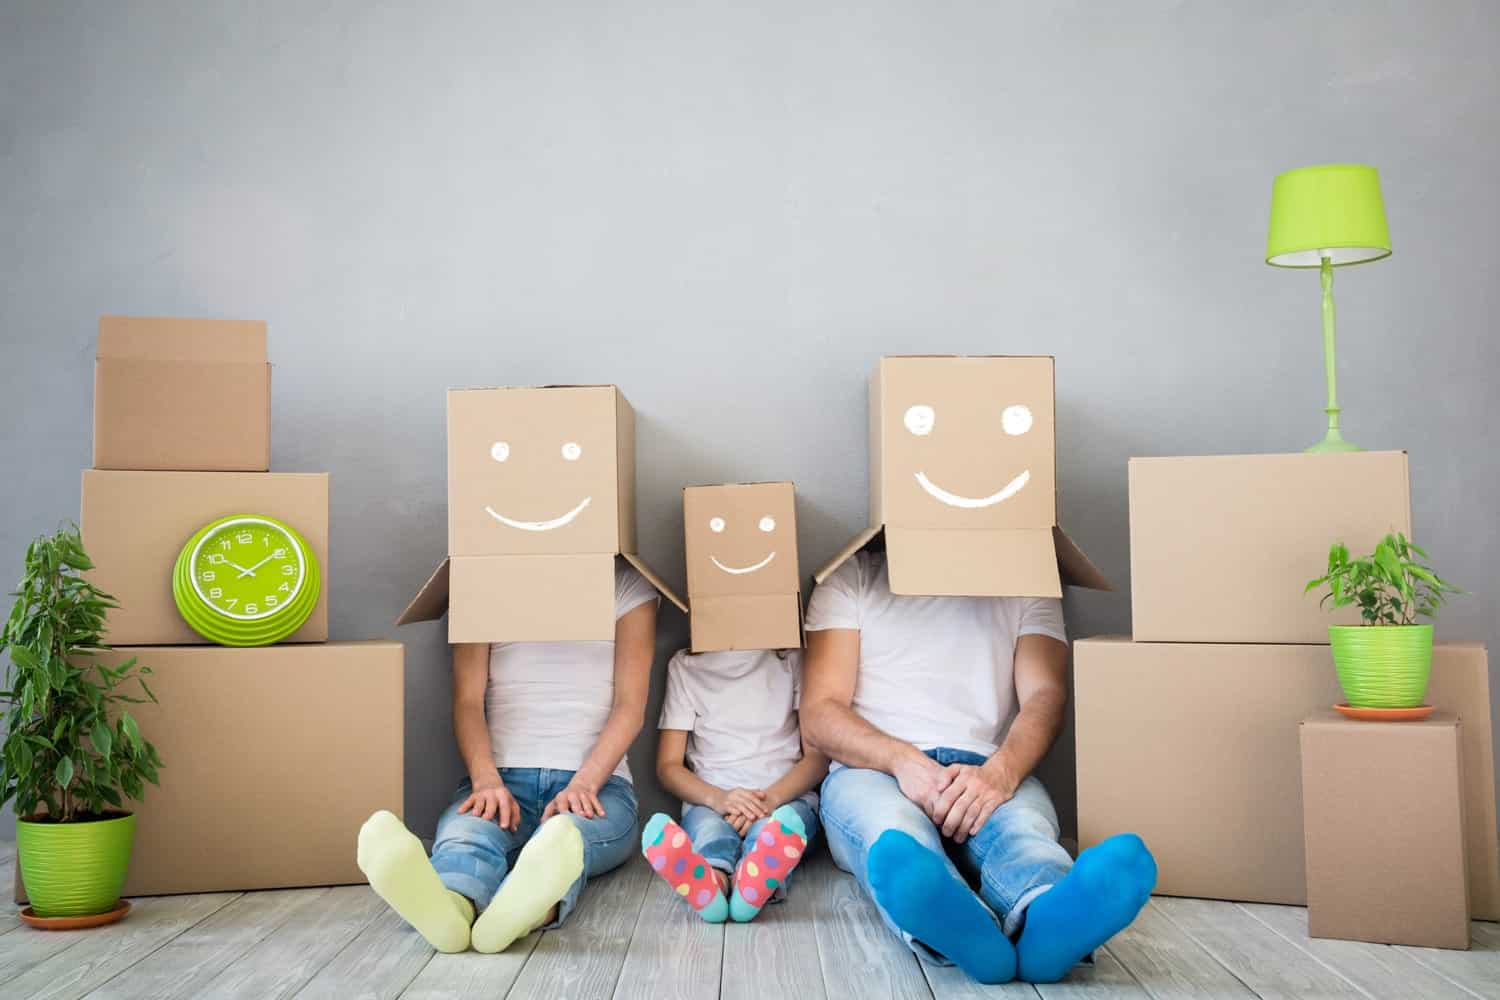 Smileys in packing boxes